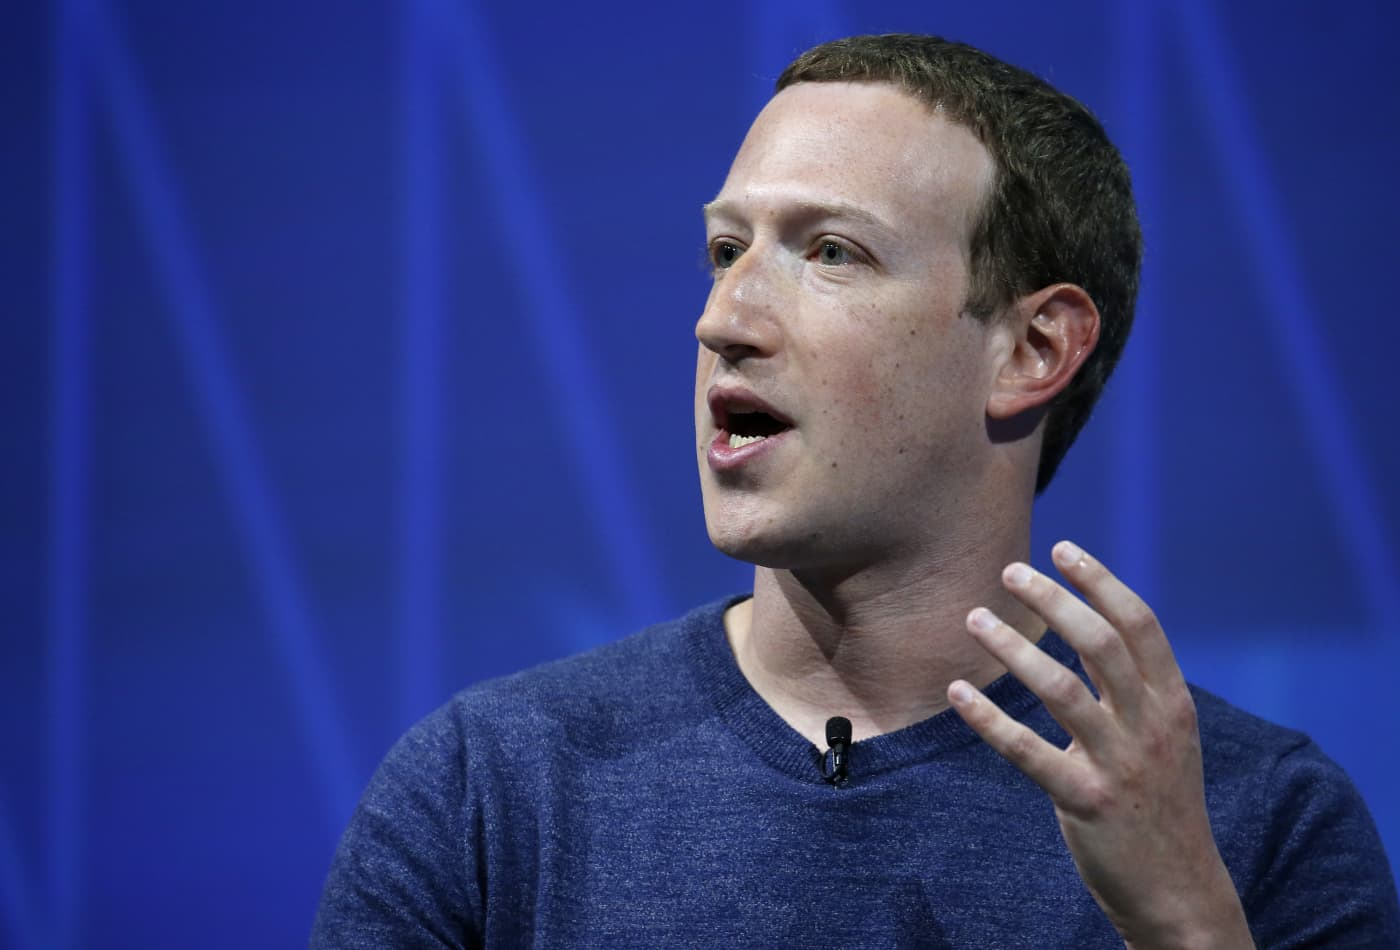 Zuckerberg says Amazon cloud bill for his philanthropy is sky high: 'Let's call Jeff up and talk about this'